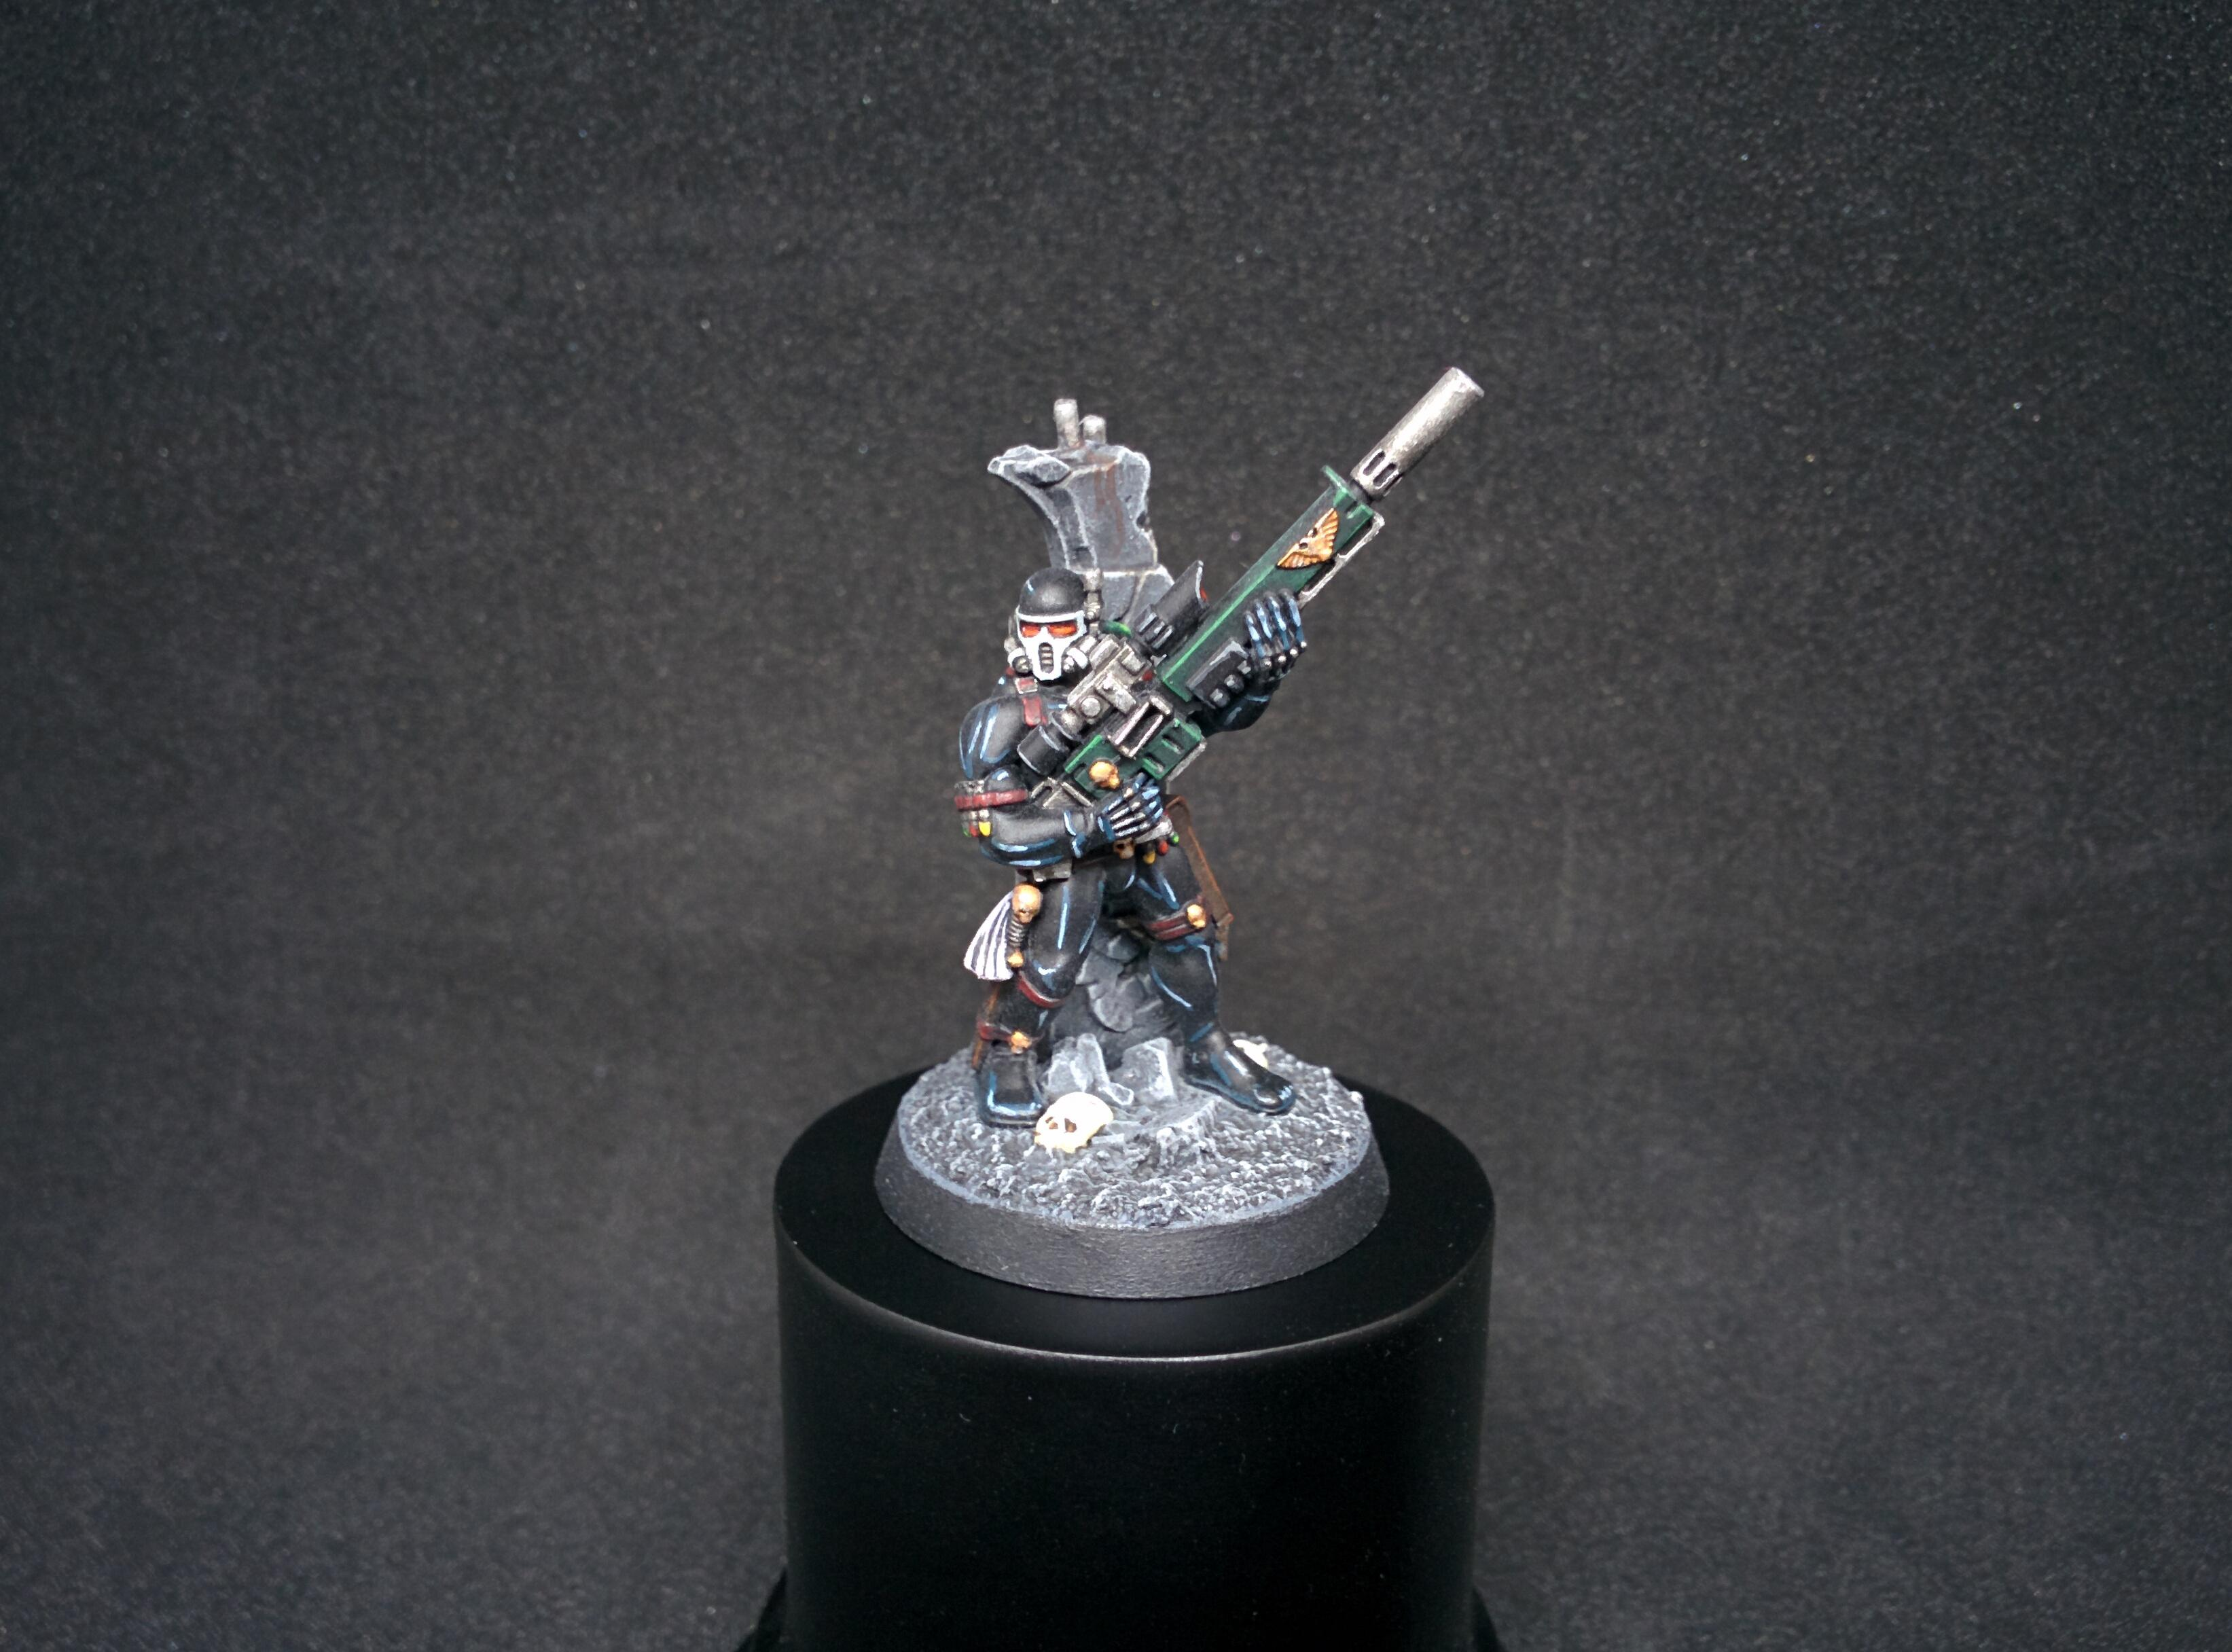 Assassin, Citadel, Gamesworkshop, Imperium, Officio Assassinorum, Vindicare, Warhammer 40,000, Warhammer Fantasy